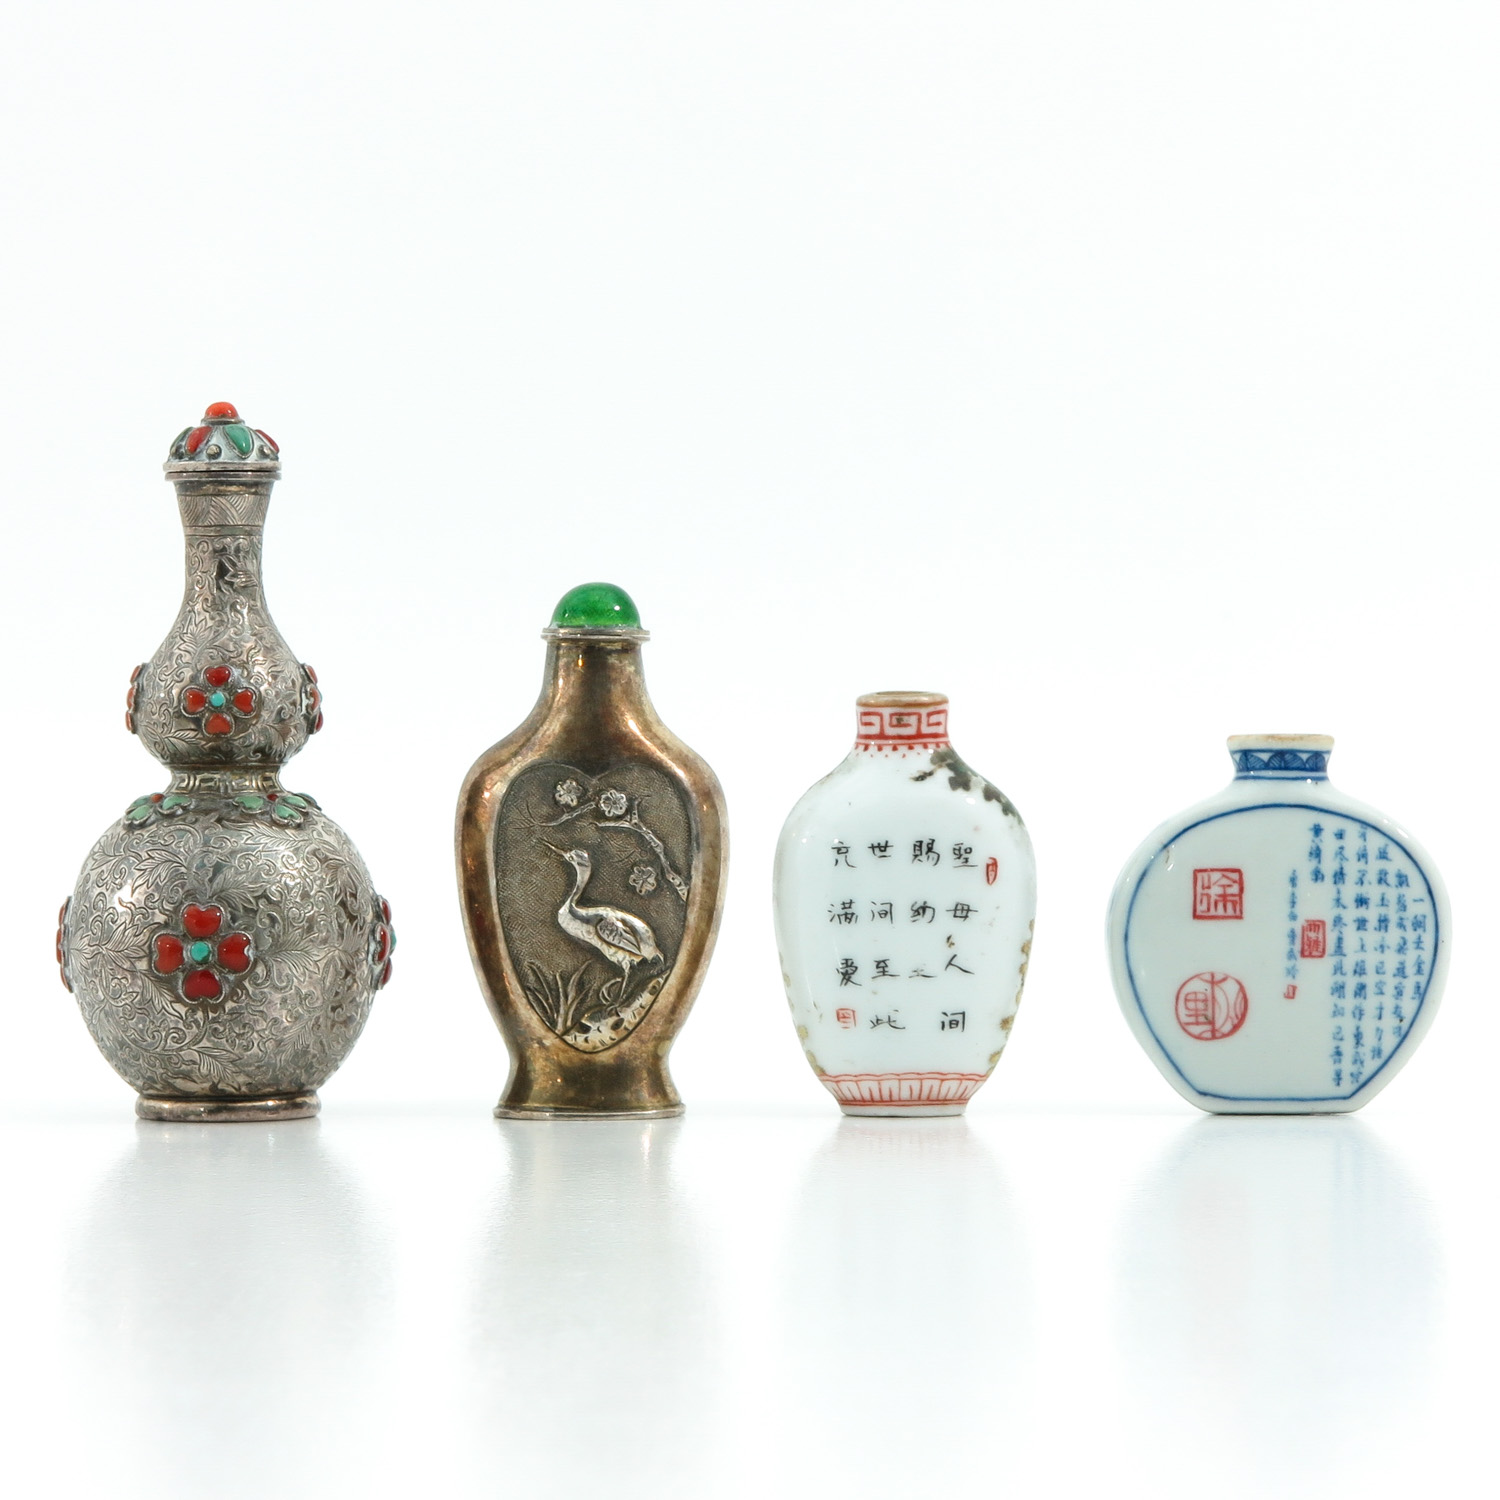 A Diverse Collection of 4 Snuff Bottles - Image 3 of 10